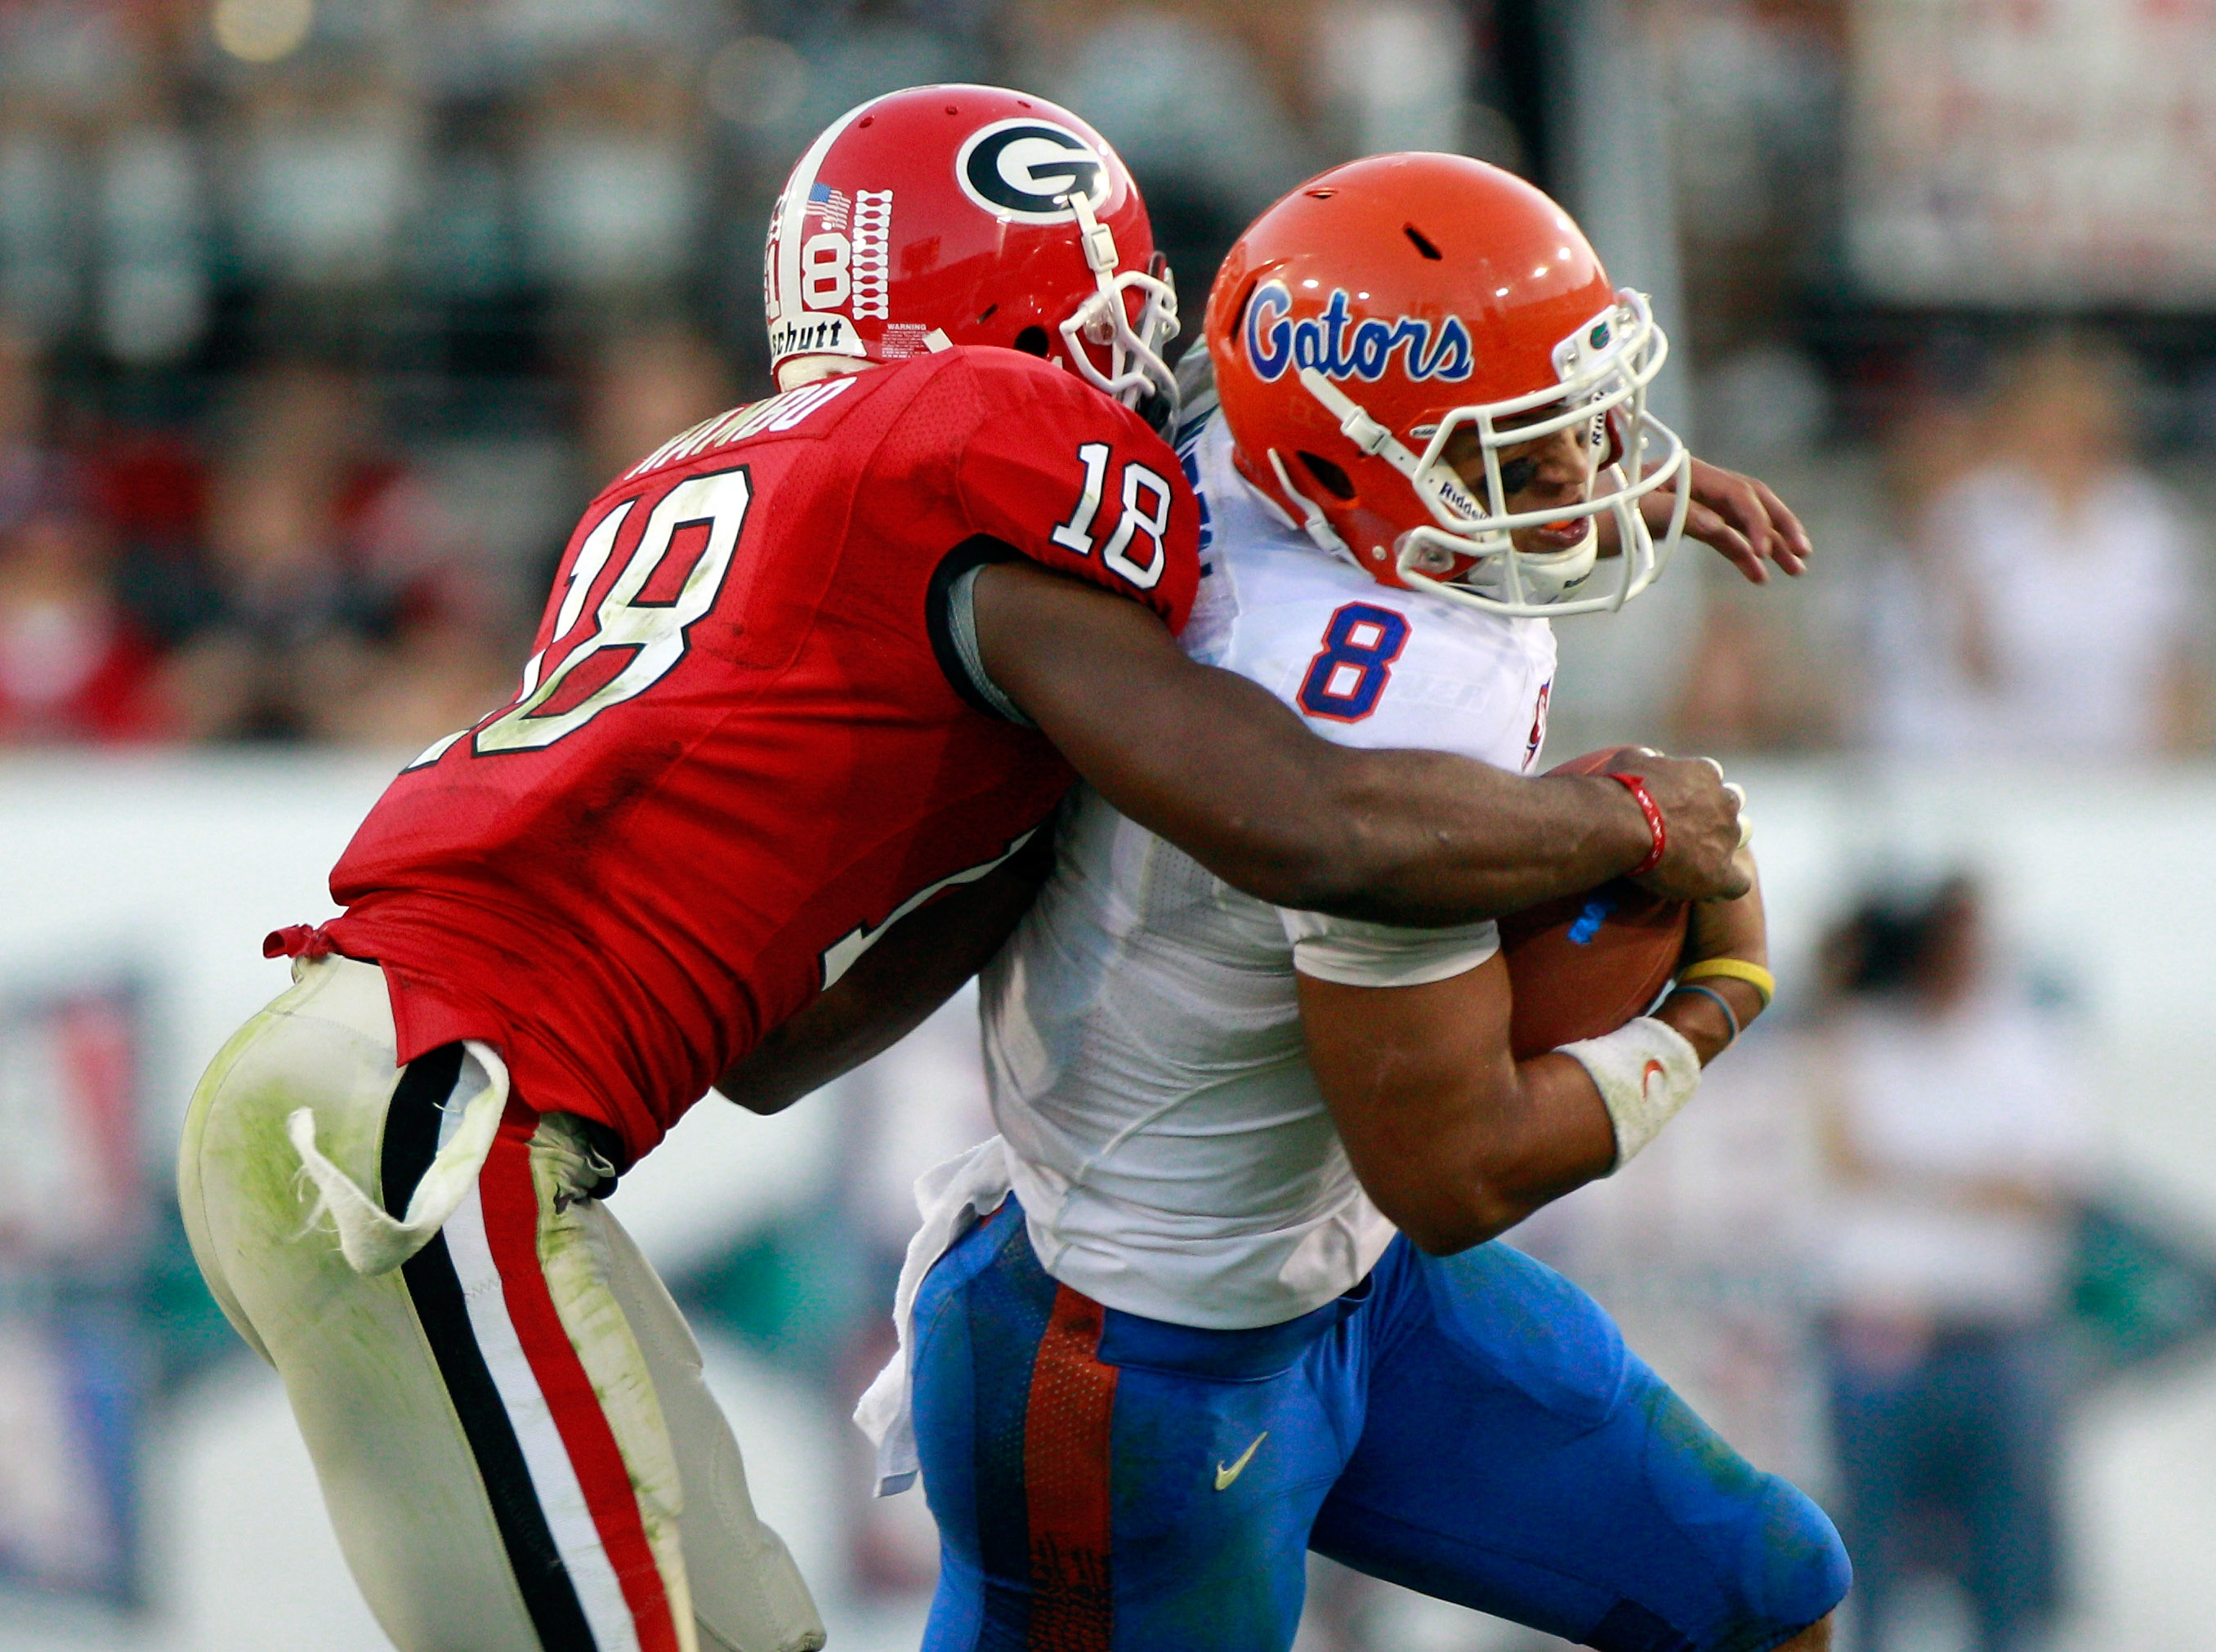 JACKSONVILLE, FL - OCTOBER 30:  Trey Burton #8 of the Florida Gators is tackled by Bacarri Rambo#18 of the Georgia Bulldogs during the game at EverBank Field on October 30, 2010 in Jacksonville, Florida.  (Photo by Sam Greenwood/Getty Images)